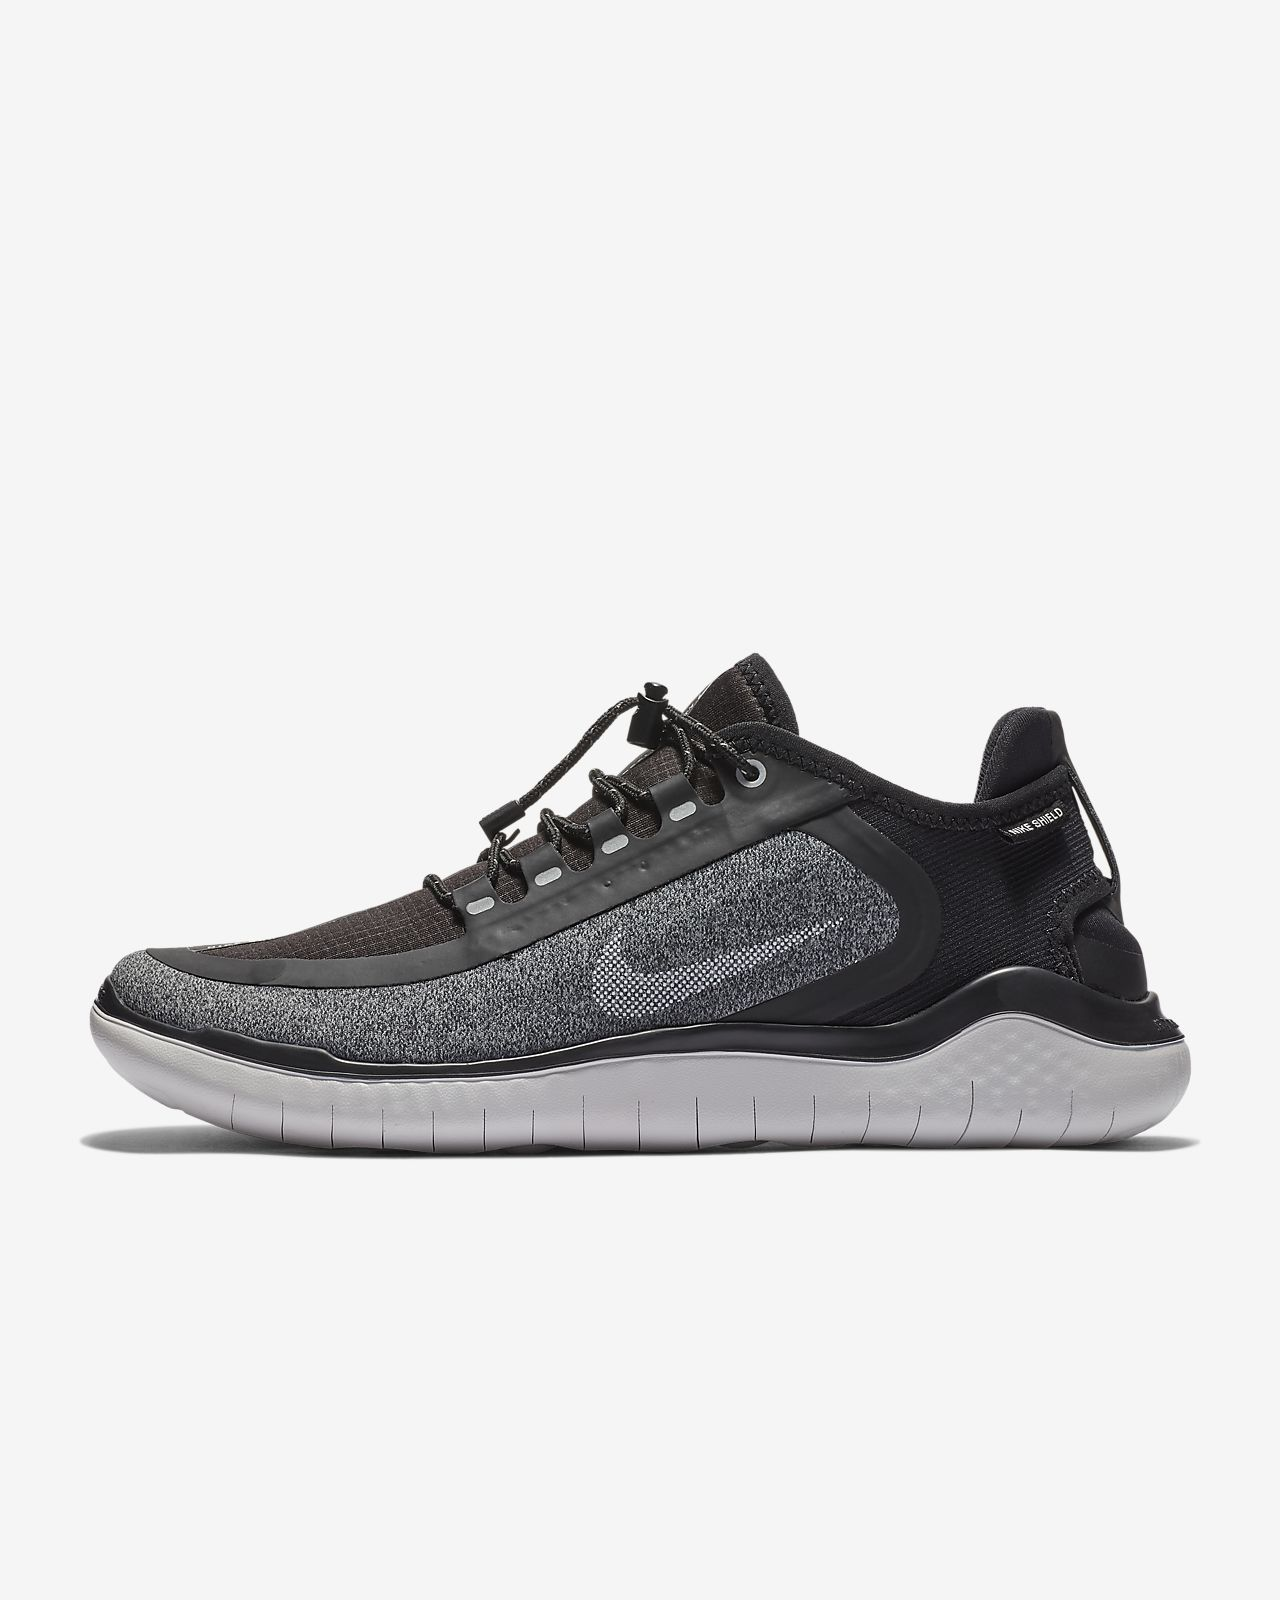 new style 22cbb 717f7 ... Chaussure de running Nike Free RN 2018 Shield Water-Repellent pour Femme